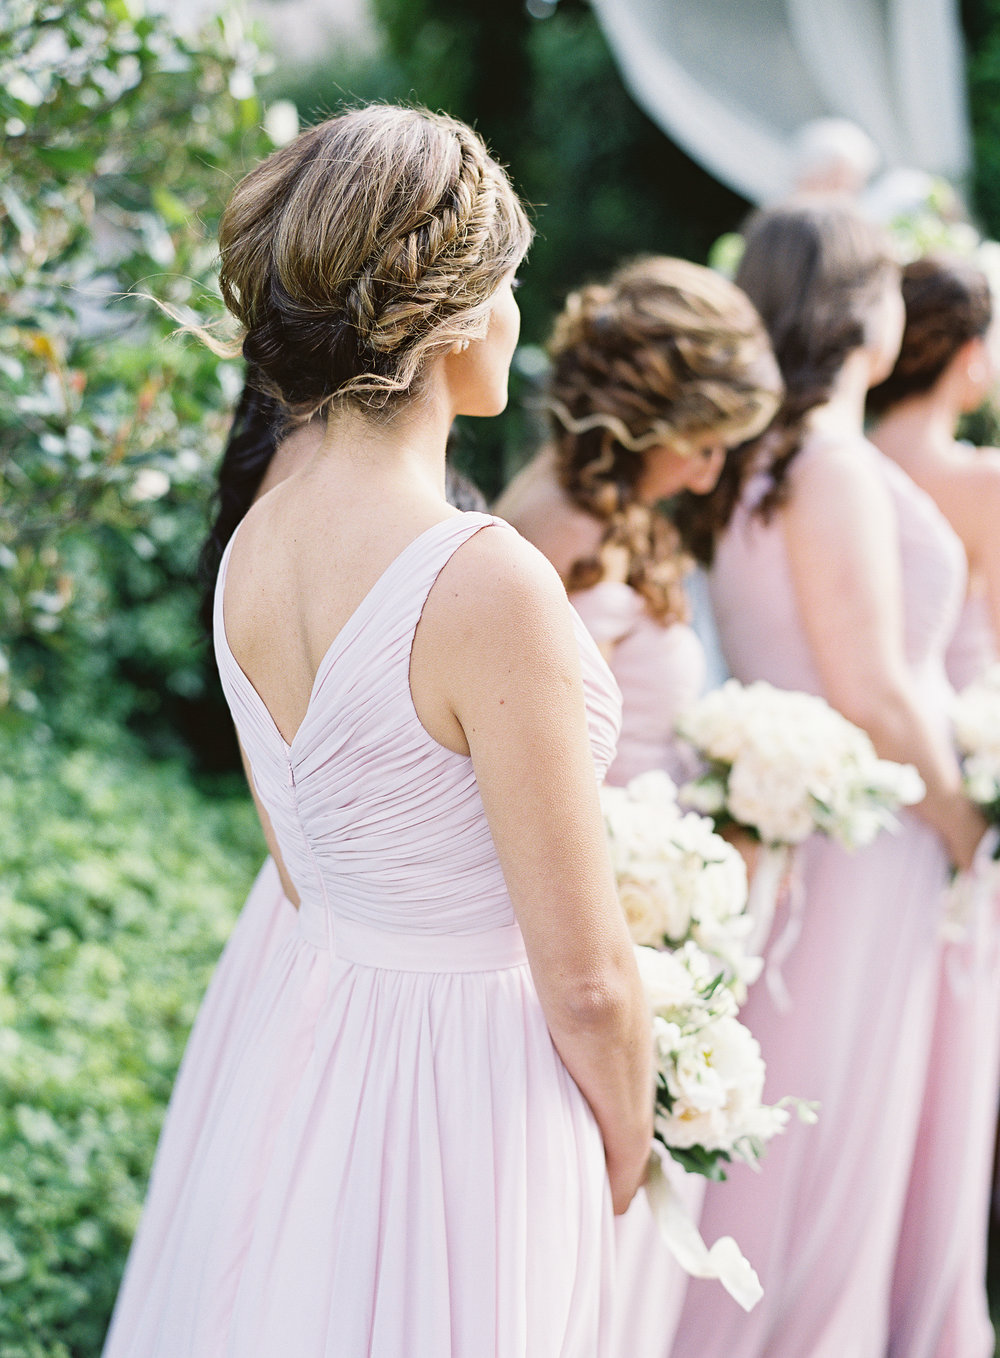 Meghan Mehan Photography | Fine Art Film Wedding Photographer | California | San Francisco | Napa | Sonoma | Santa Barbara | Big Sur | Destination Wedding Photographer 128.jpg